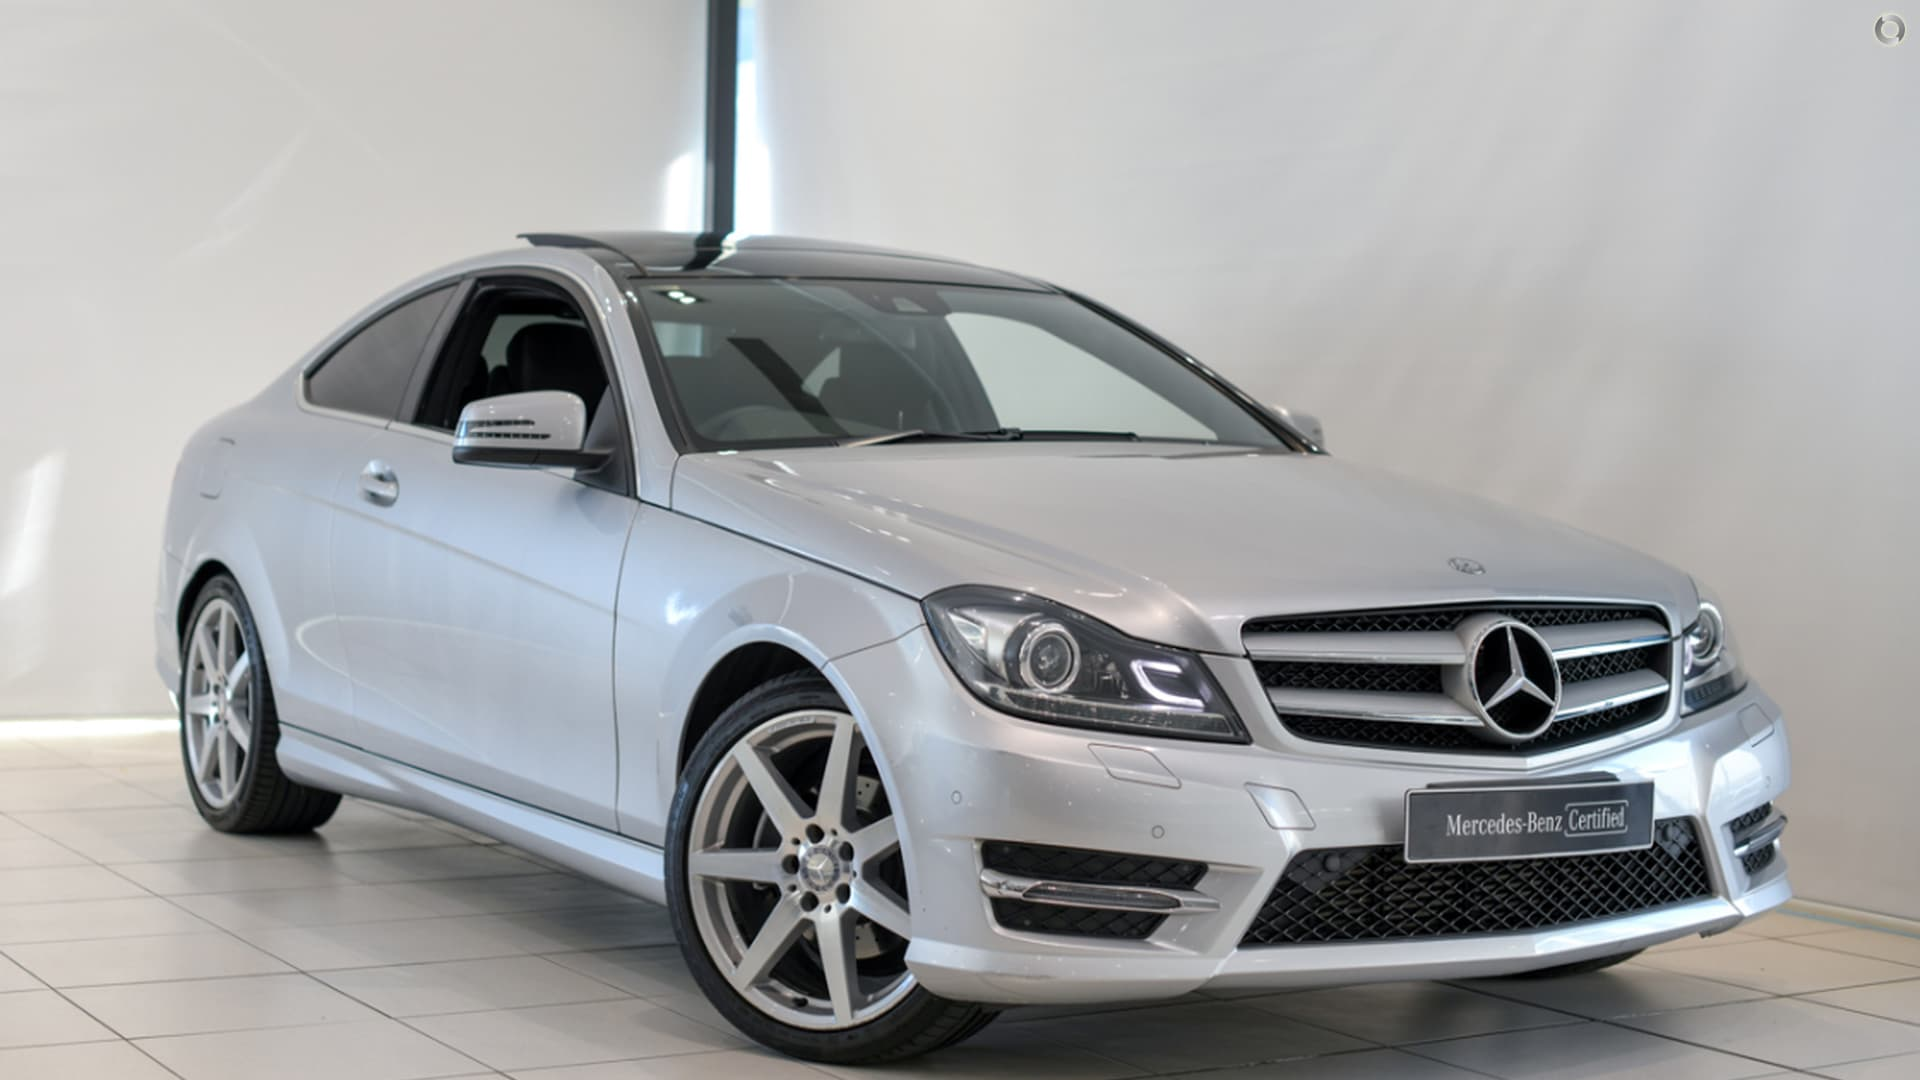 2013 Mercedes-Benz C 250 CDI Coupe